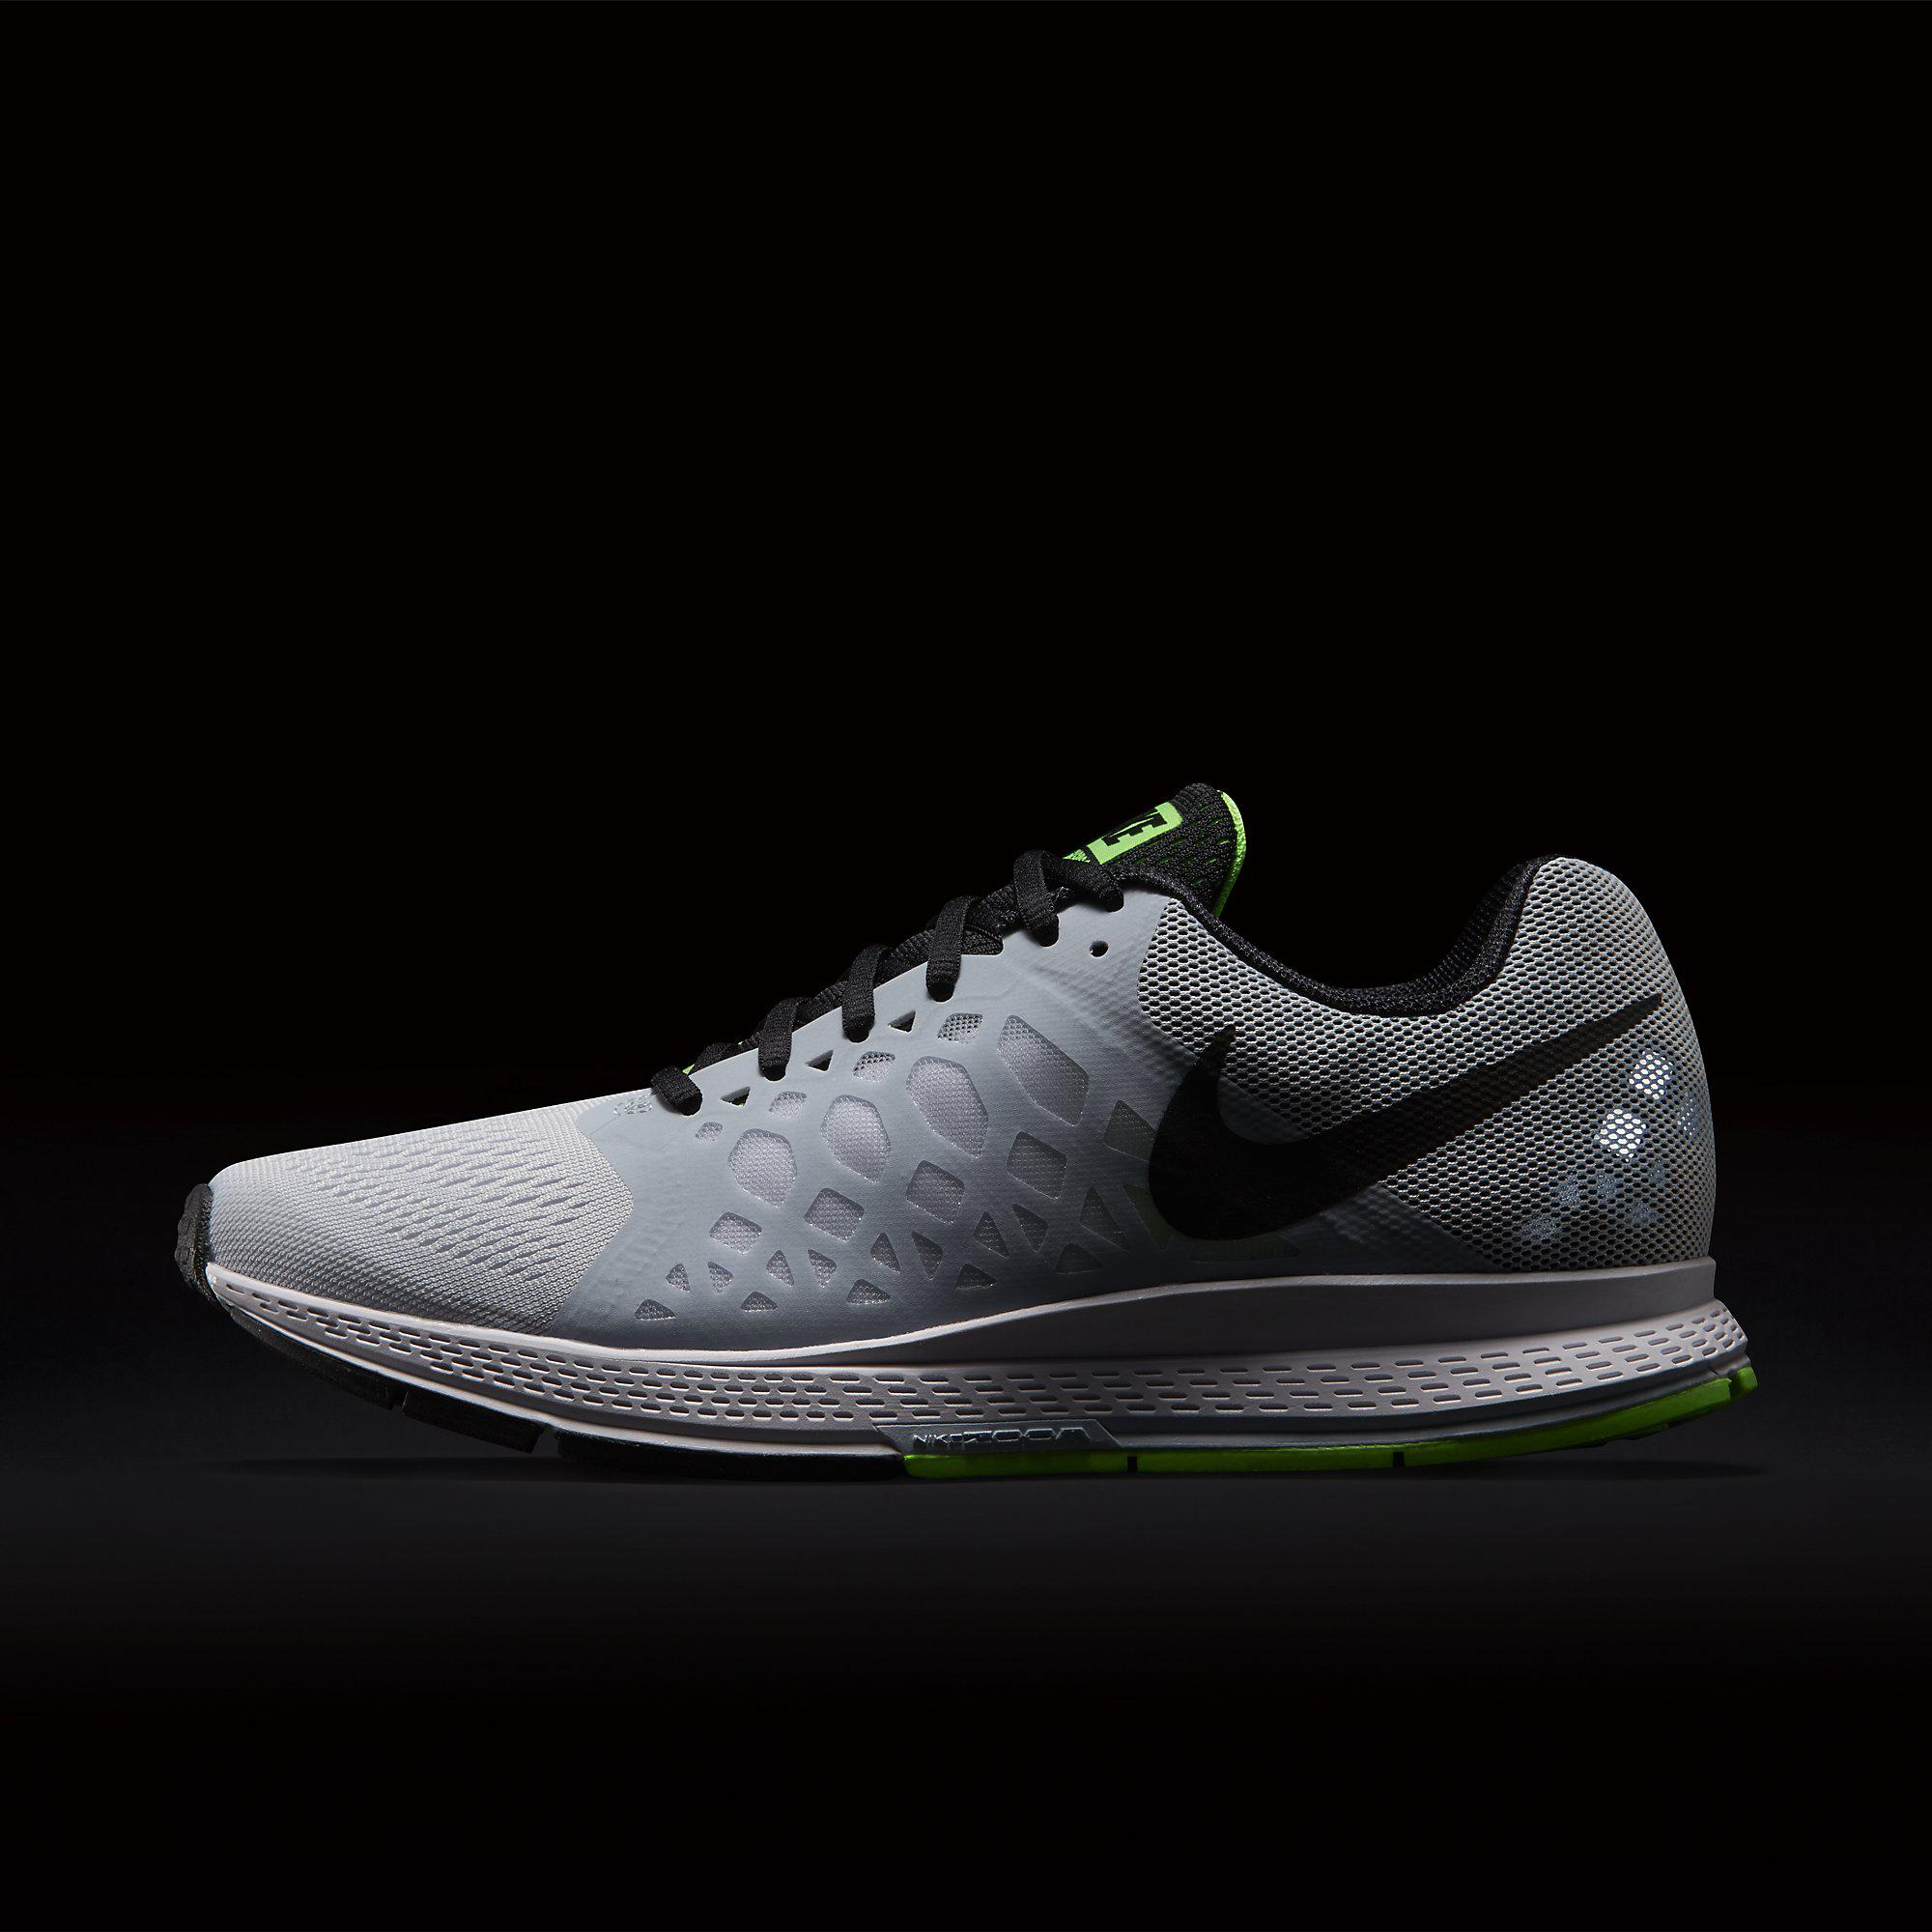 Citaten Zoon Free : Nike air zoom pegasus pure platinum white wolf grey black